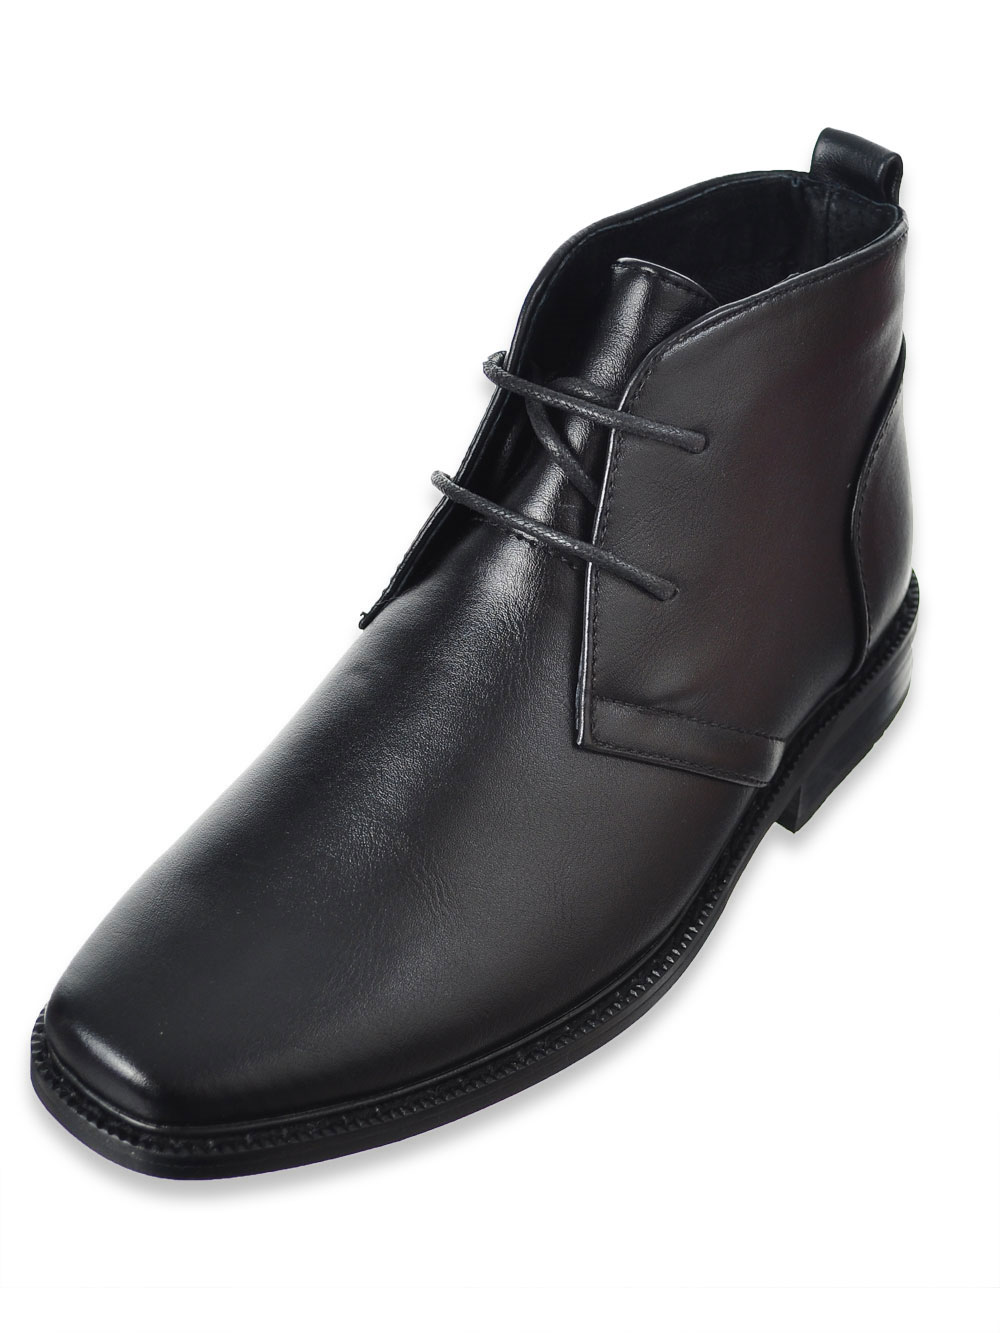 Boys' Ankle Boots